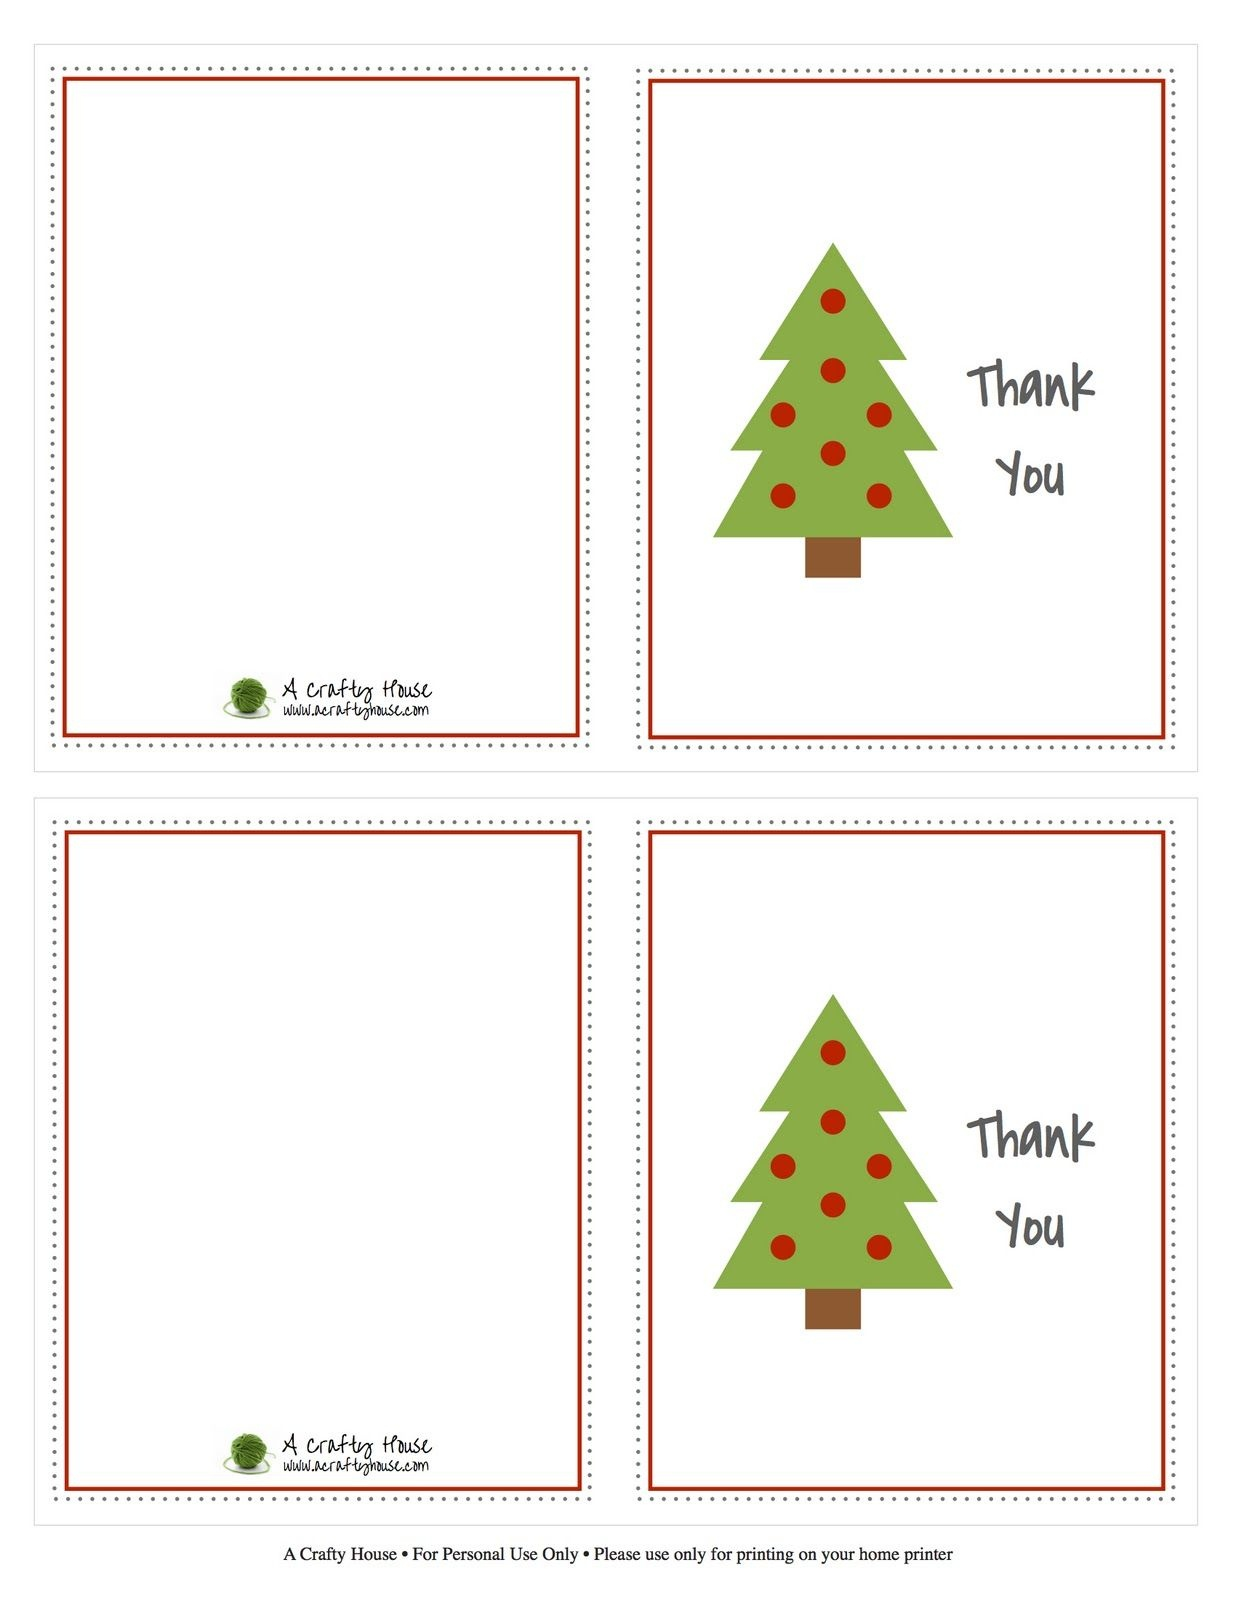 Free Printable Christmas Card Thank You Note | A Crafty House - Free Christmas Thank You Notes Printable